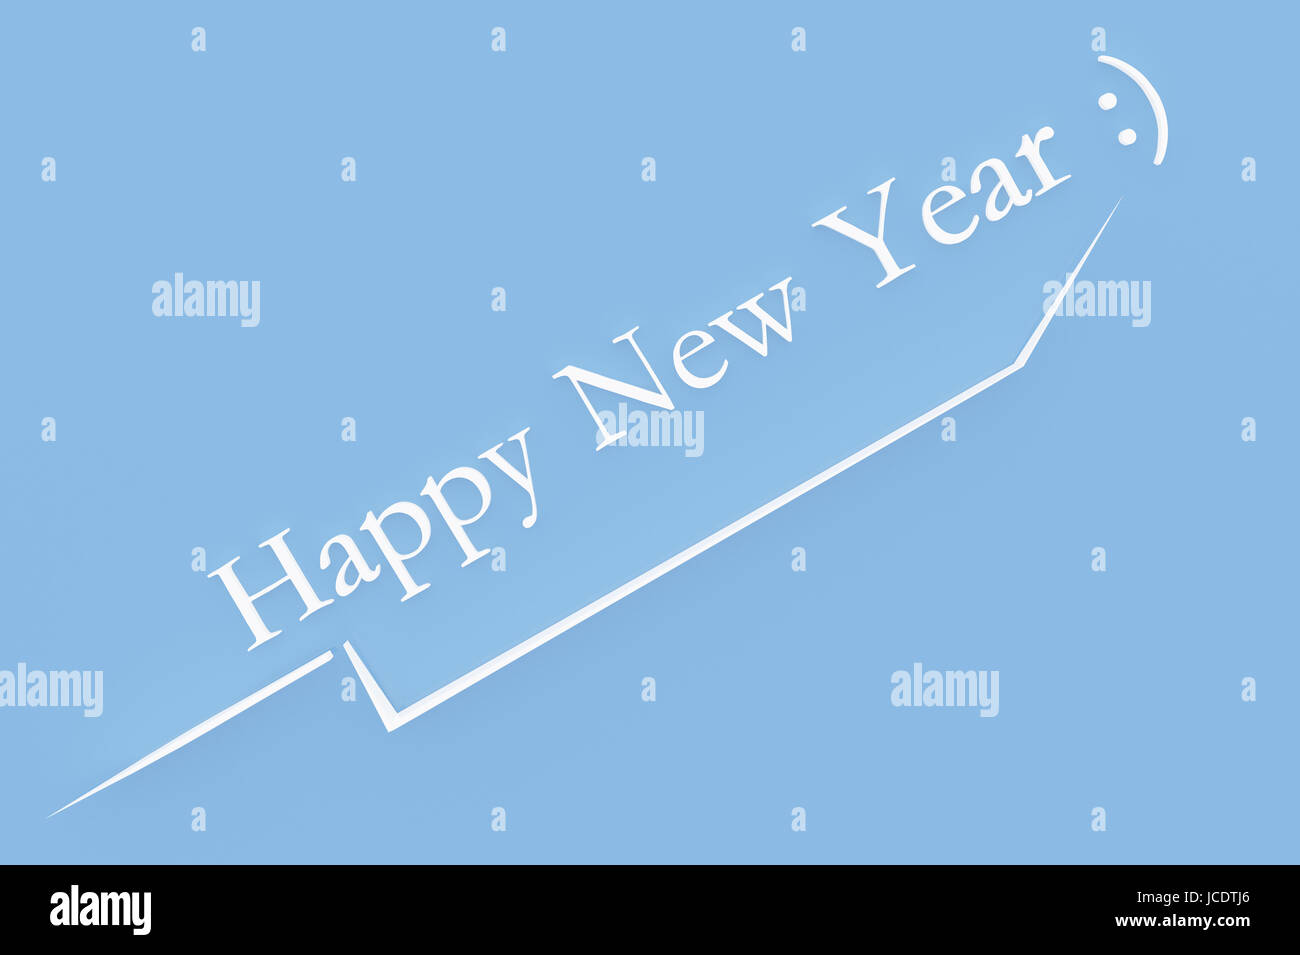 3d illustration; Shape of a  New Year's Eve with Text Stock Photo